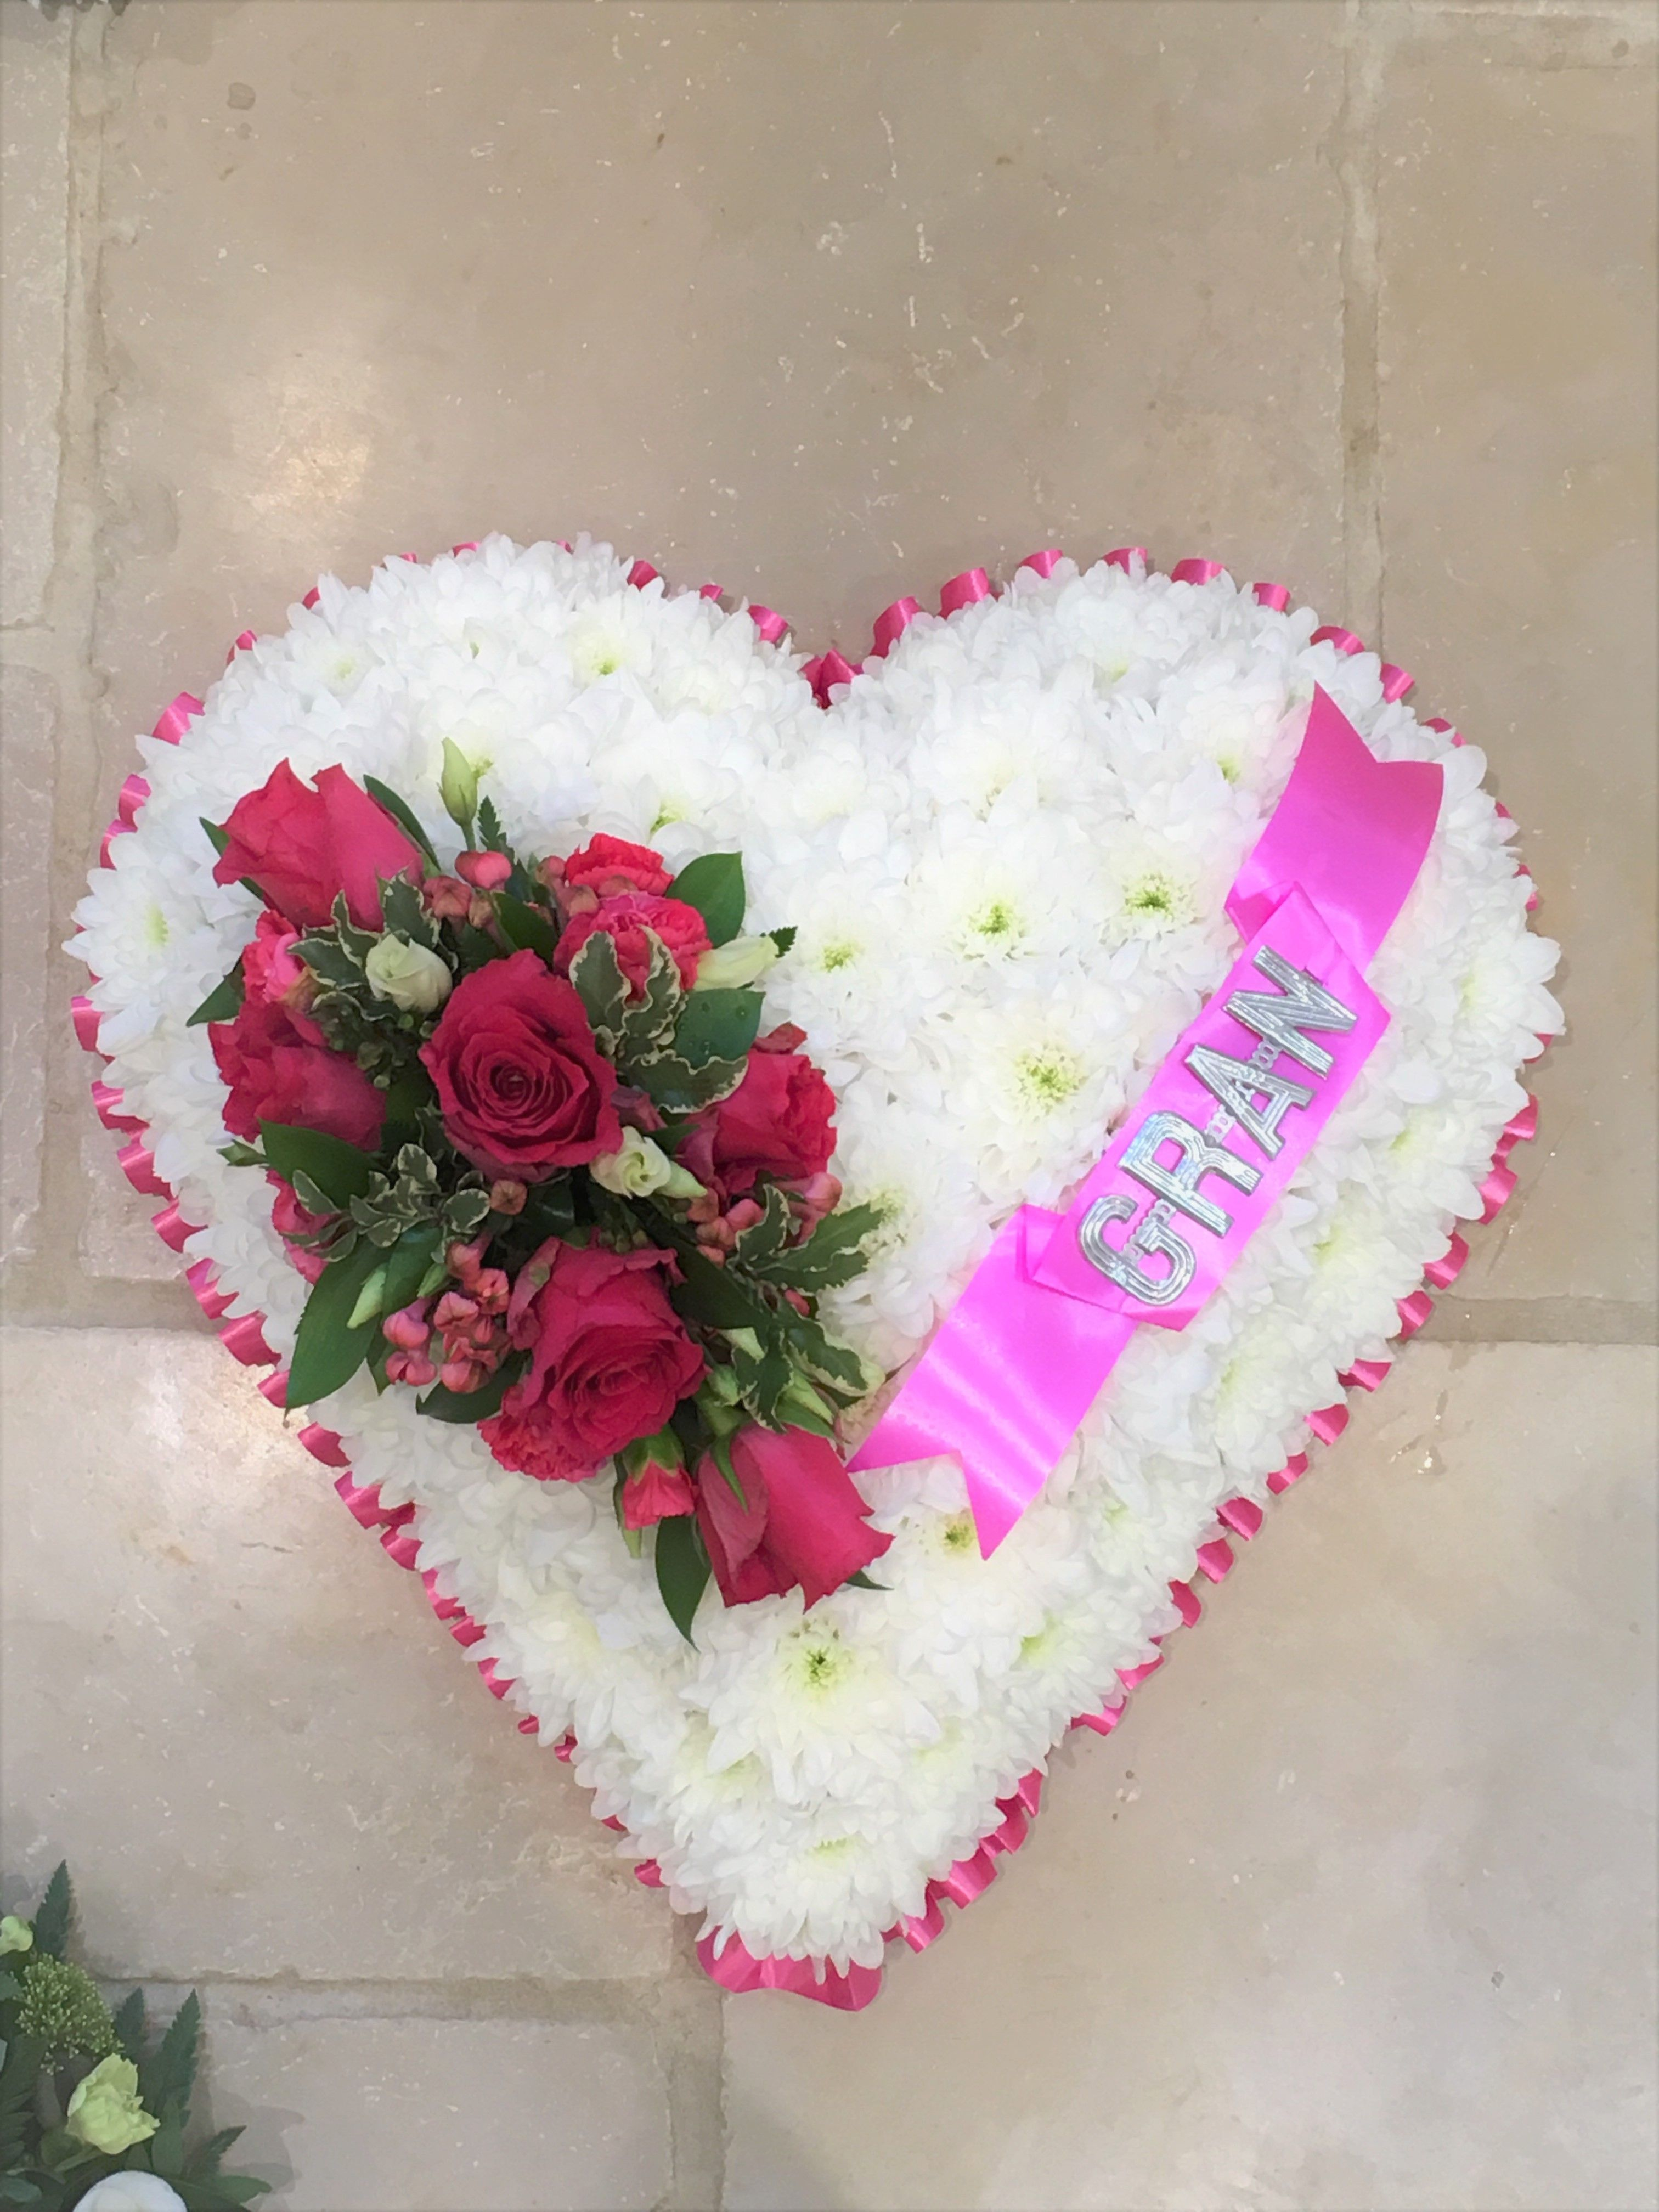 Pretty cerise pink rose spray on white chrysanthemum based heart pretty cerise pink rose spray on white chrysanthemum based heart funeral tribute with gran banner izmirmasajfo